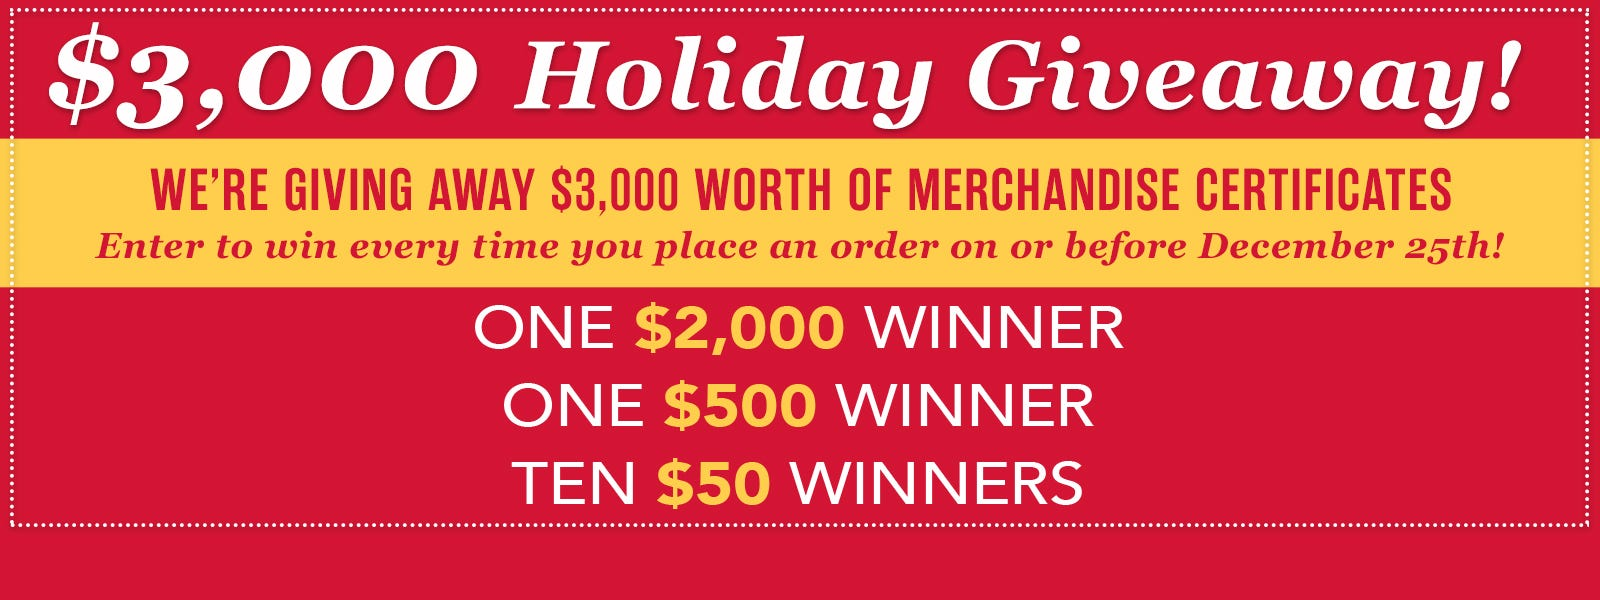 Holiday Giveaway, enter to win!